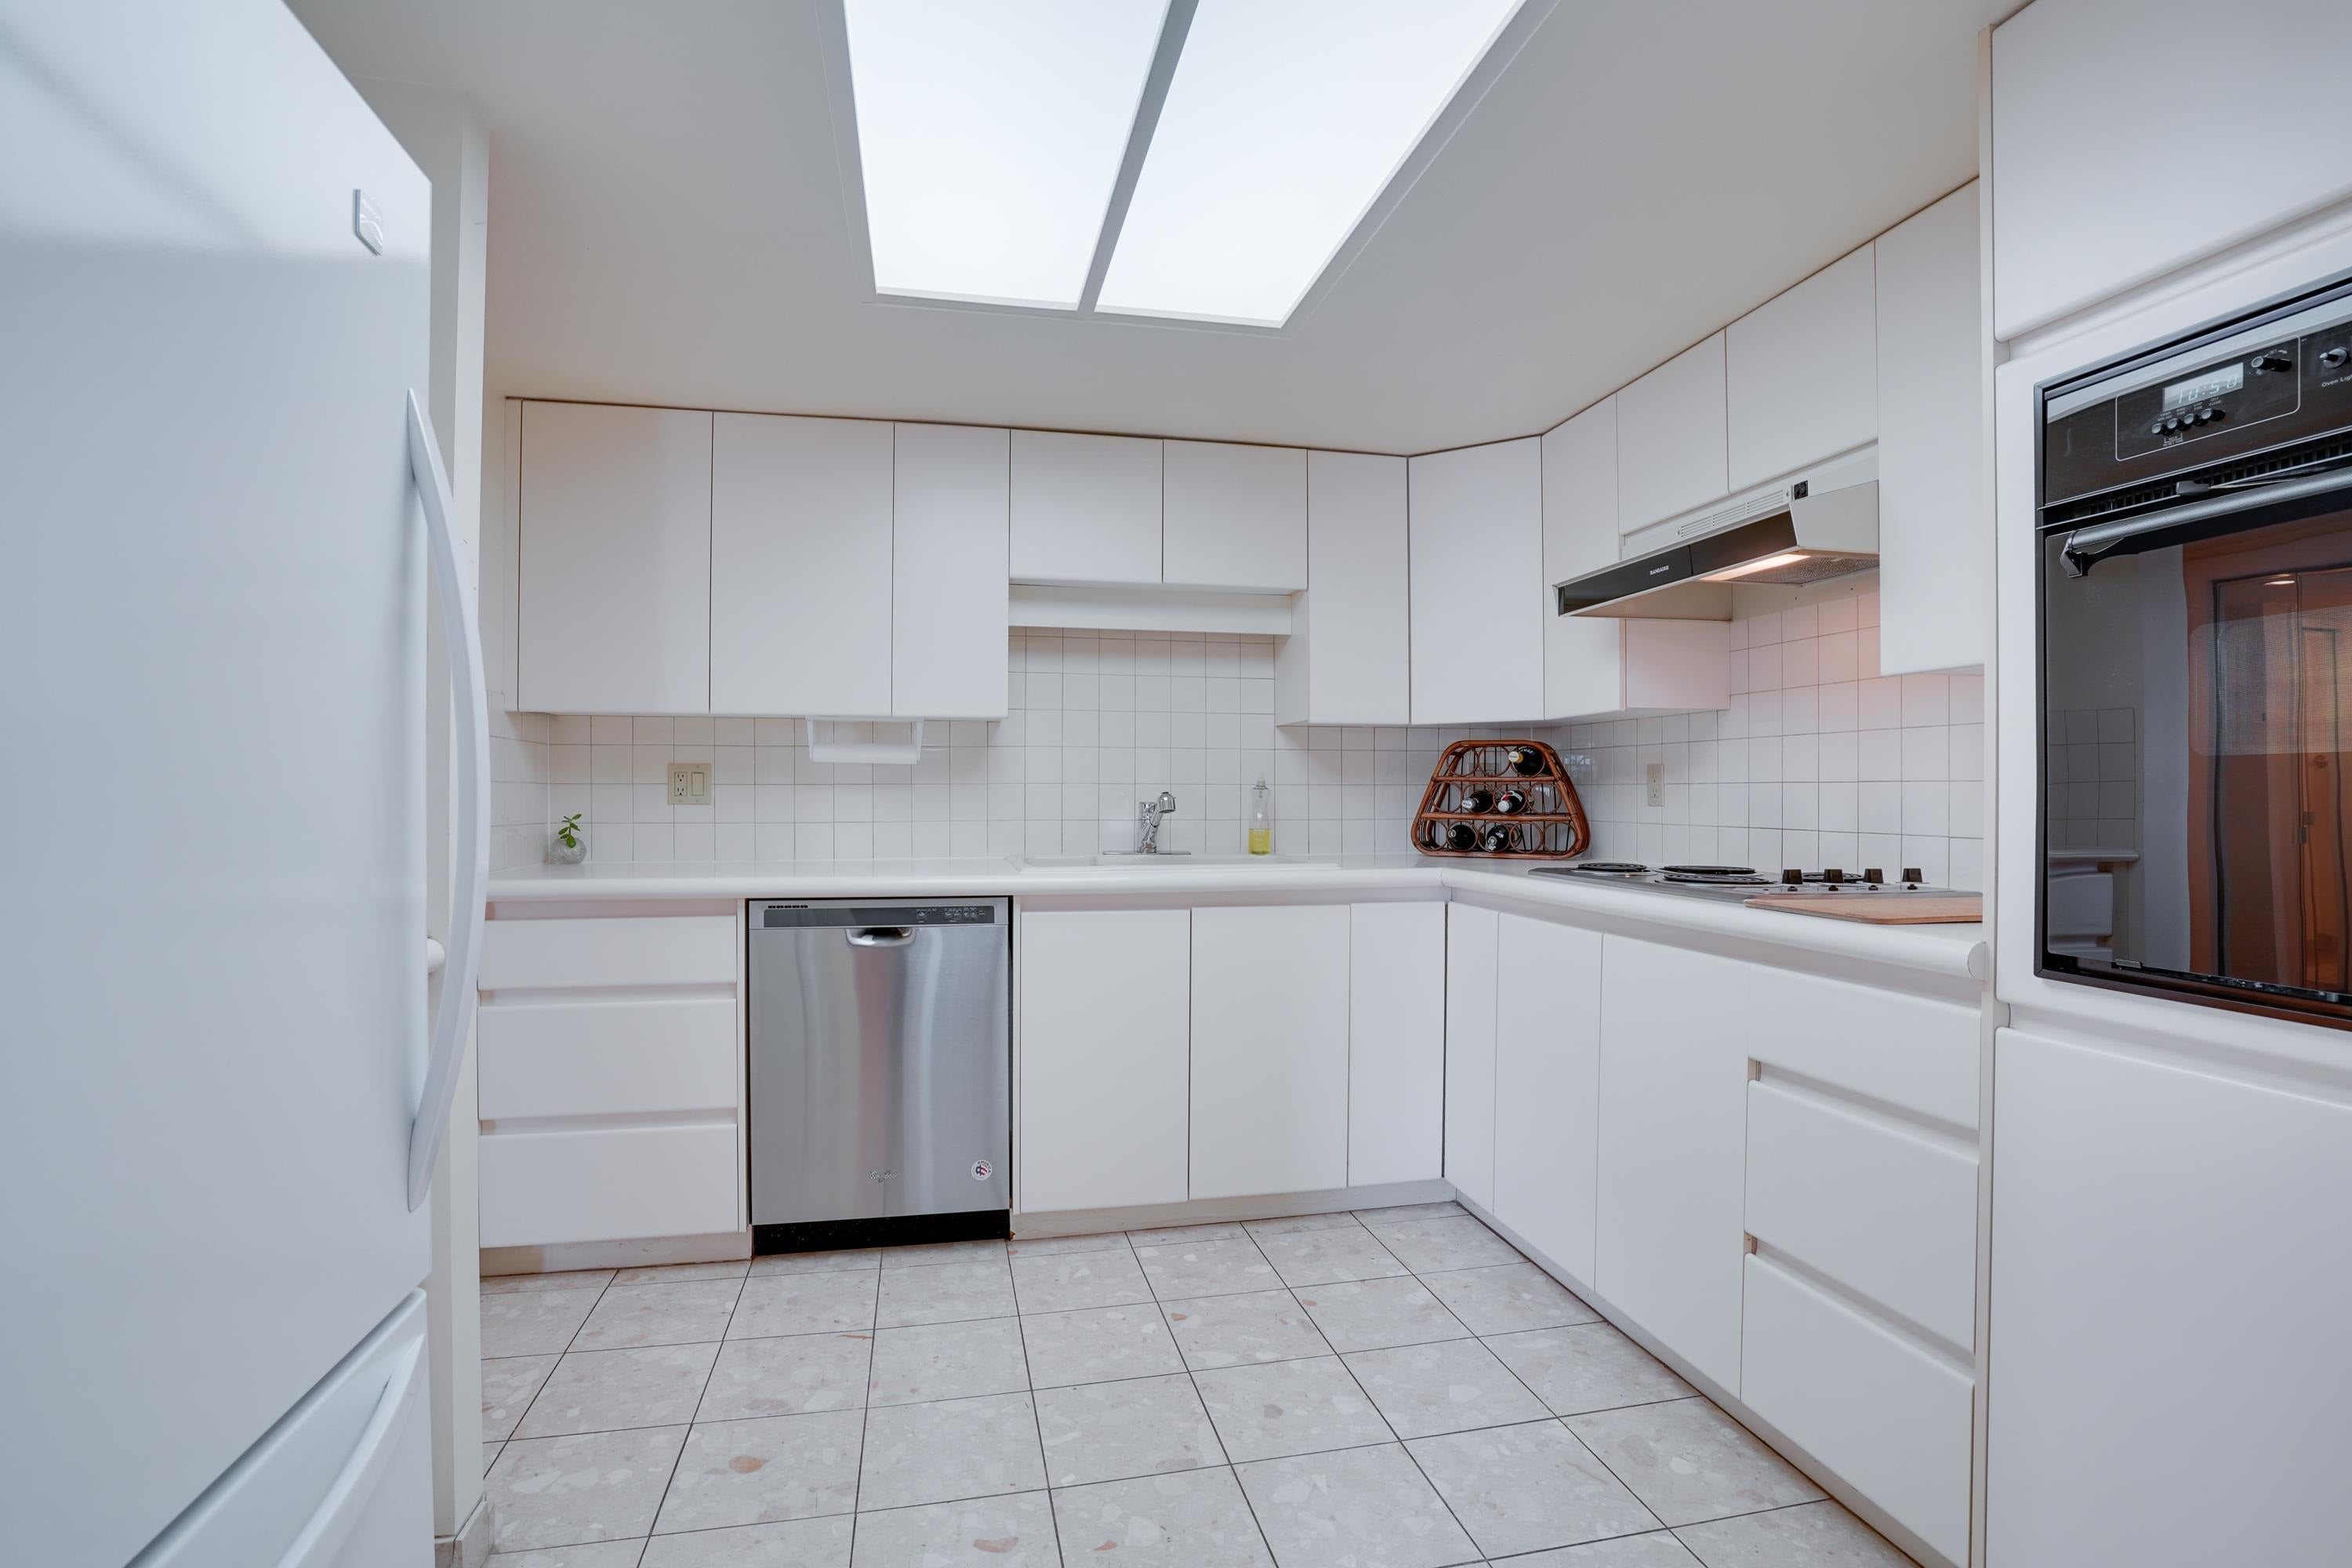 405 168 CHADWICK COURT - Lower Lonsdale Apartment/Condo for sale, 3 Bedrooms (R2619951) - #7